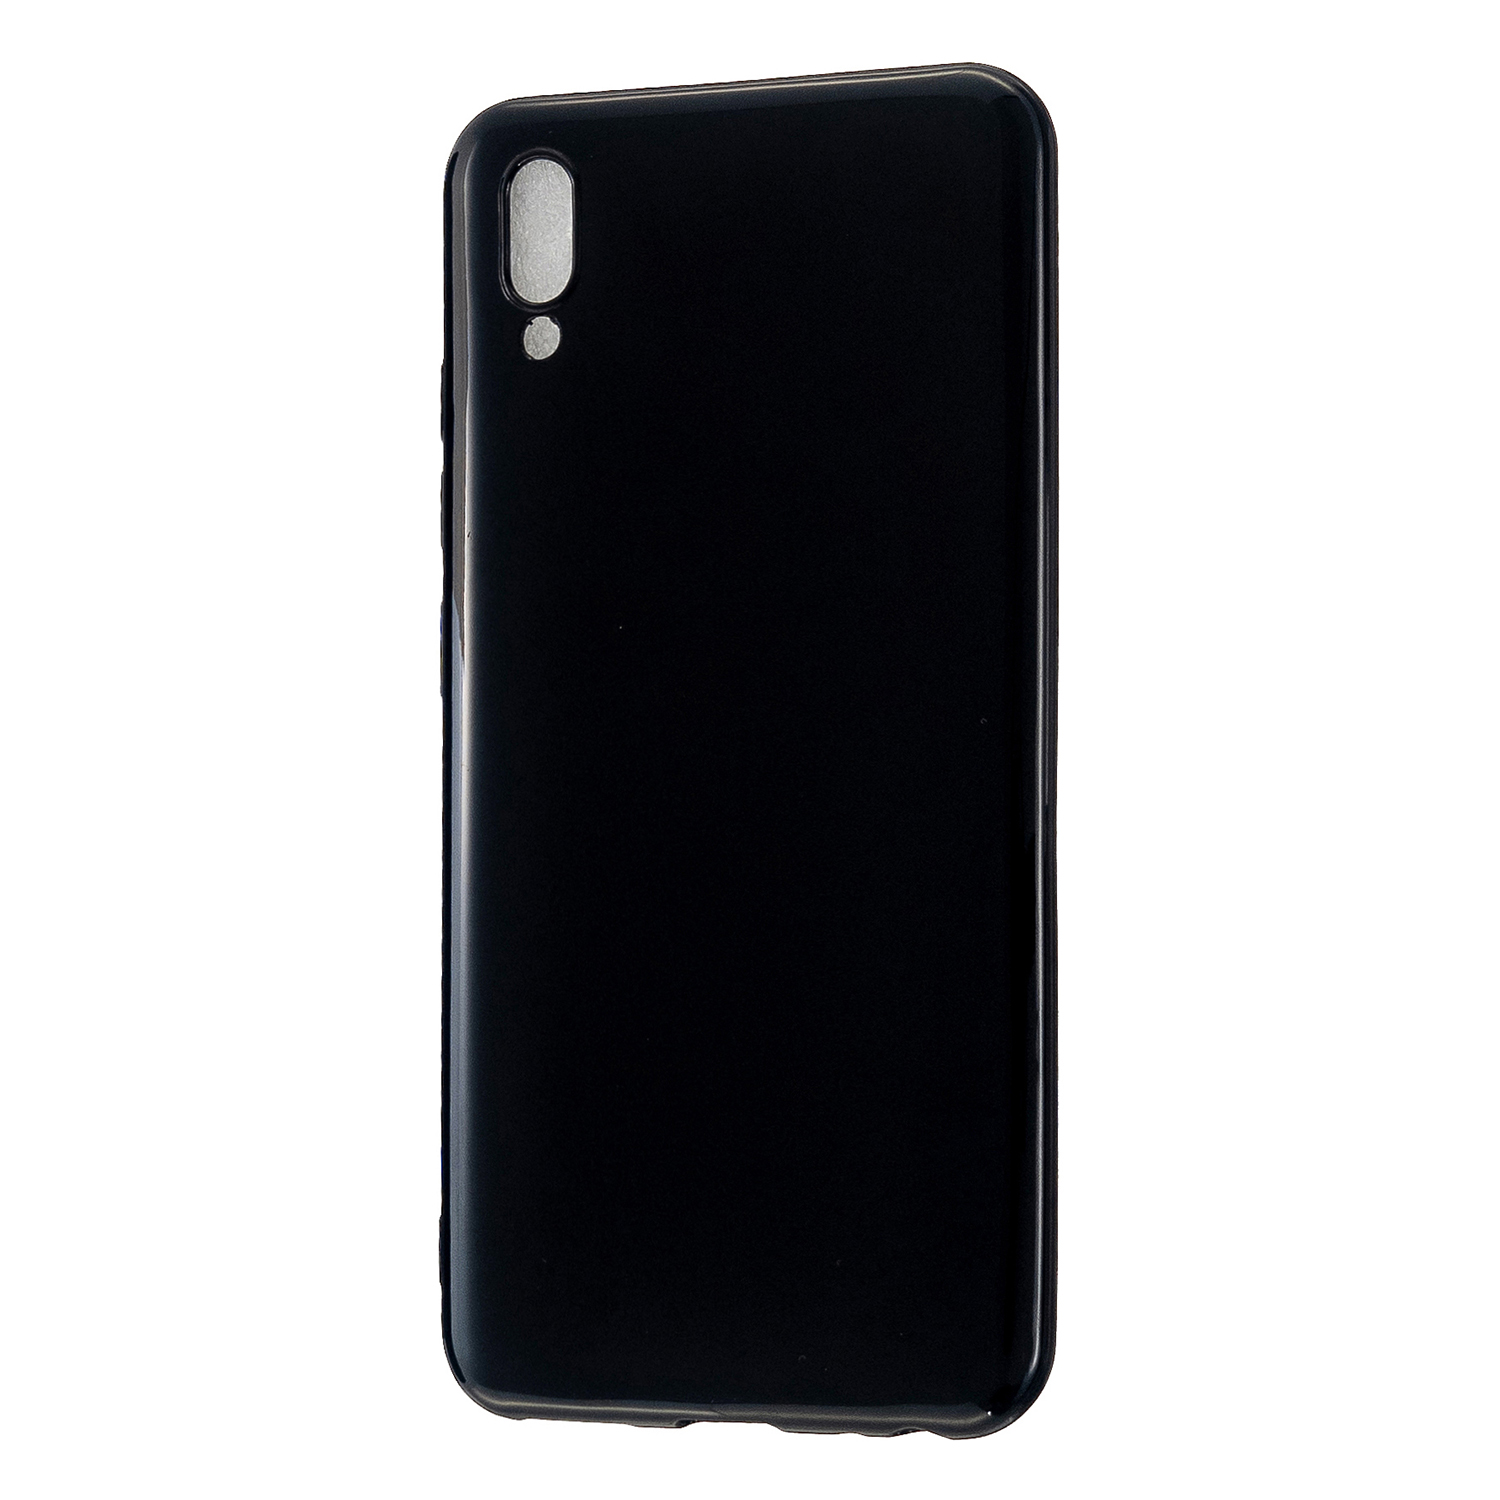 For VIVO IQOO Neo/Y97 Glossy TPU Phone Case Mobile Phone Soft Cover Anti-Slip Full Body Protection Bright black